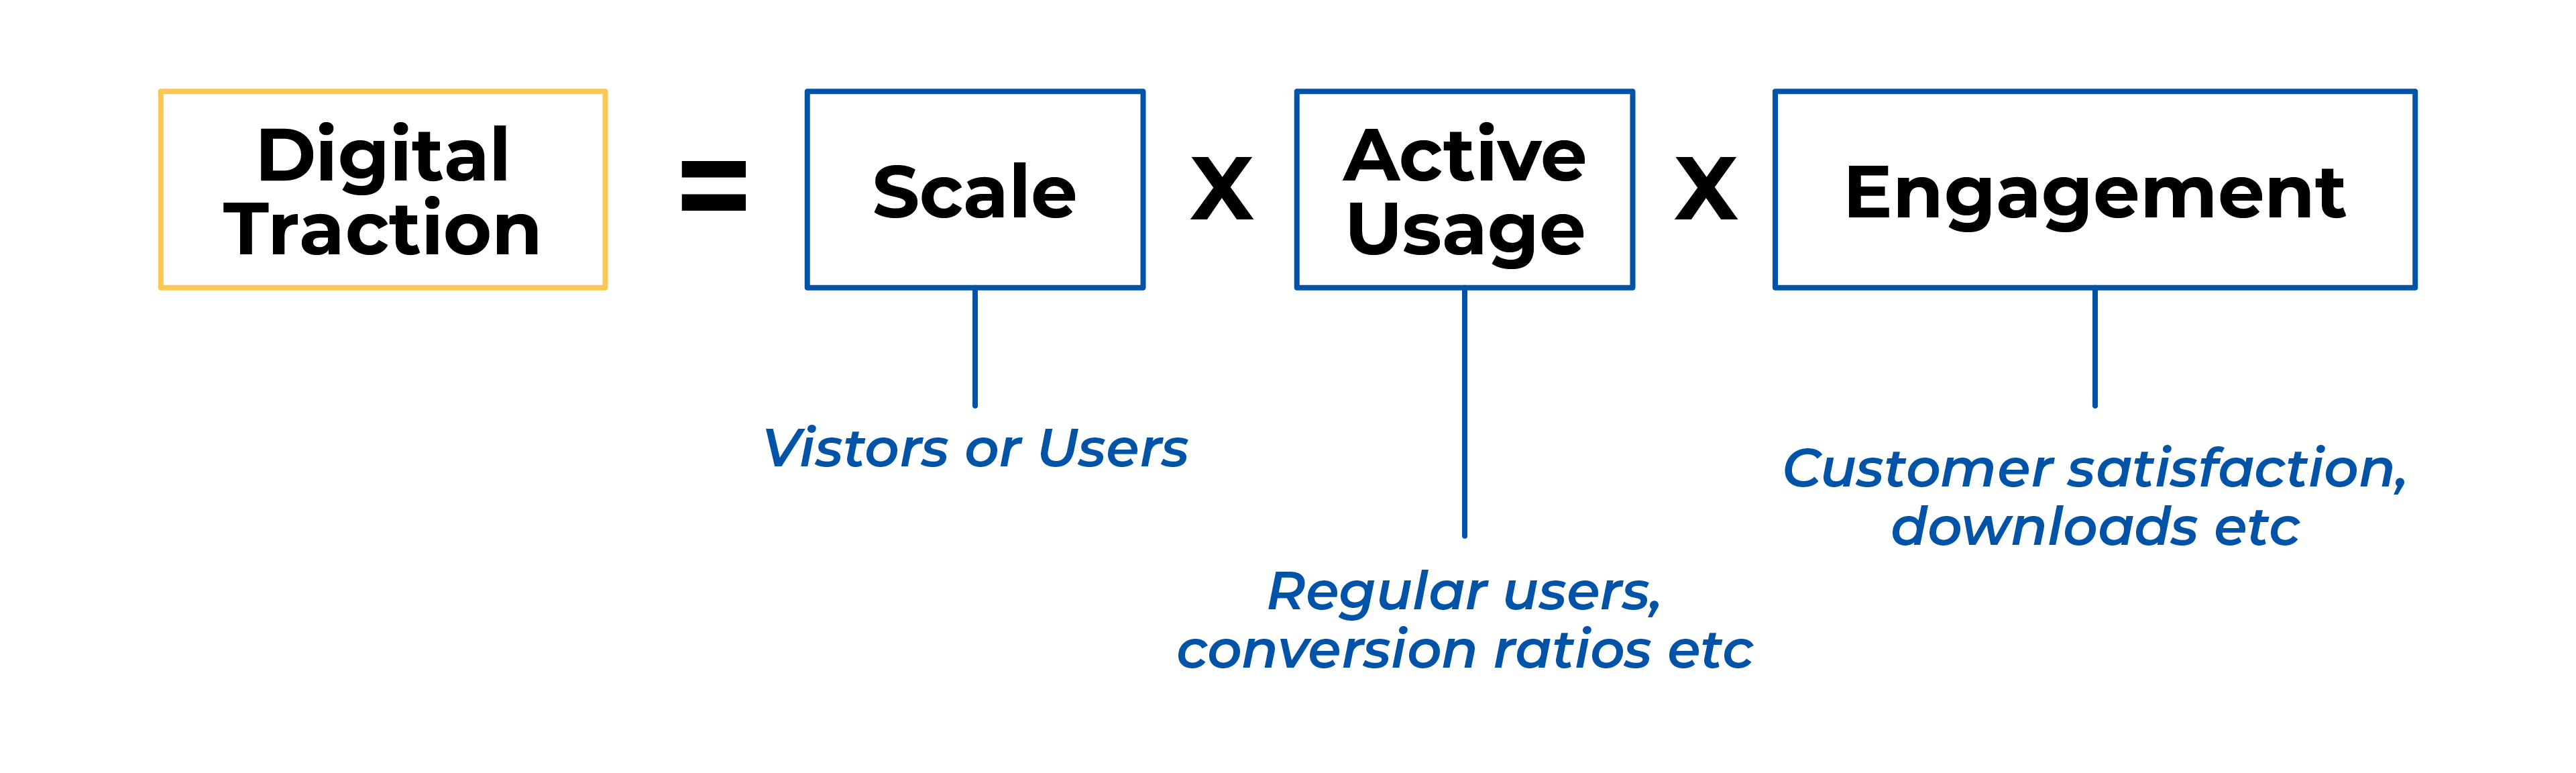 Digital Traction = Scale x Active Usage x Engagement